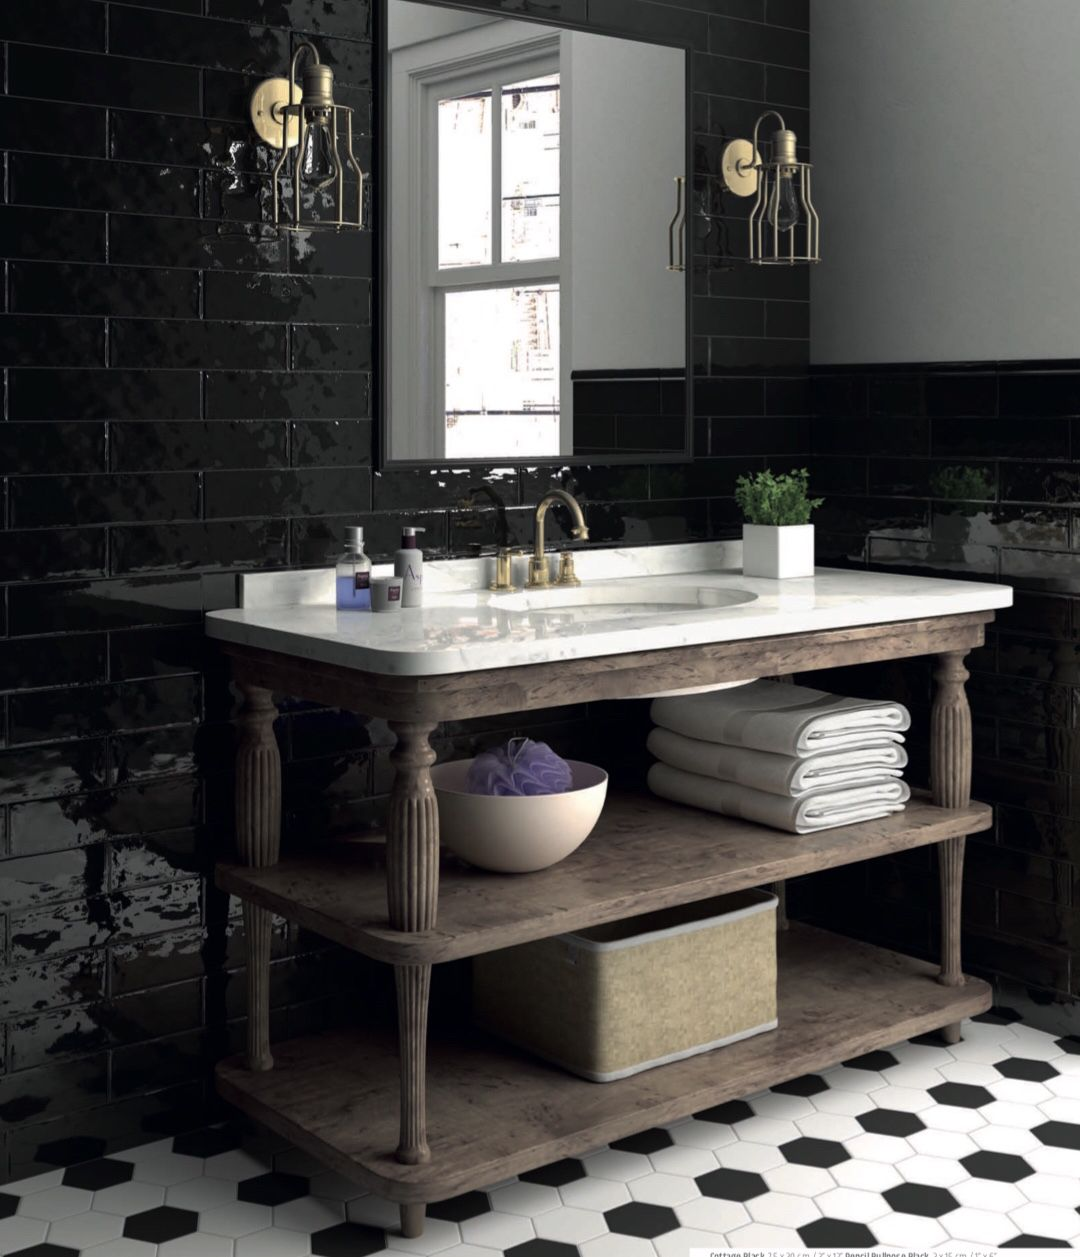 Www Pitrebathrooms Com Black Tile Bathrooms Black Tiles Kitchen Black Wall Tiles